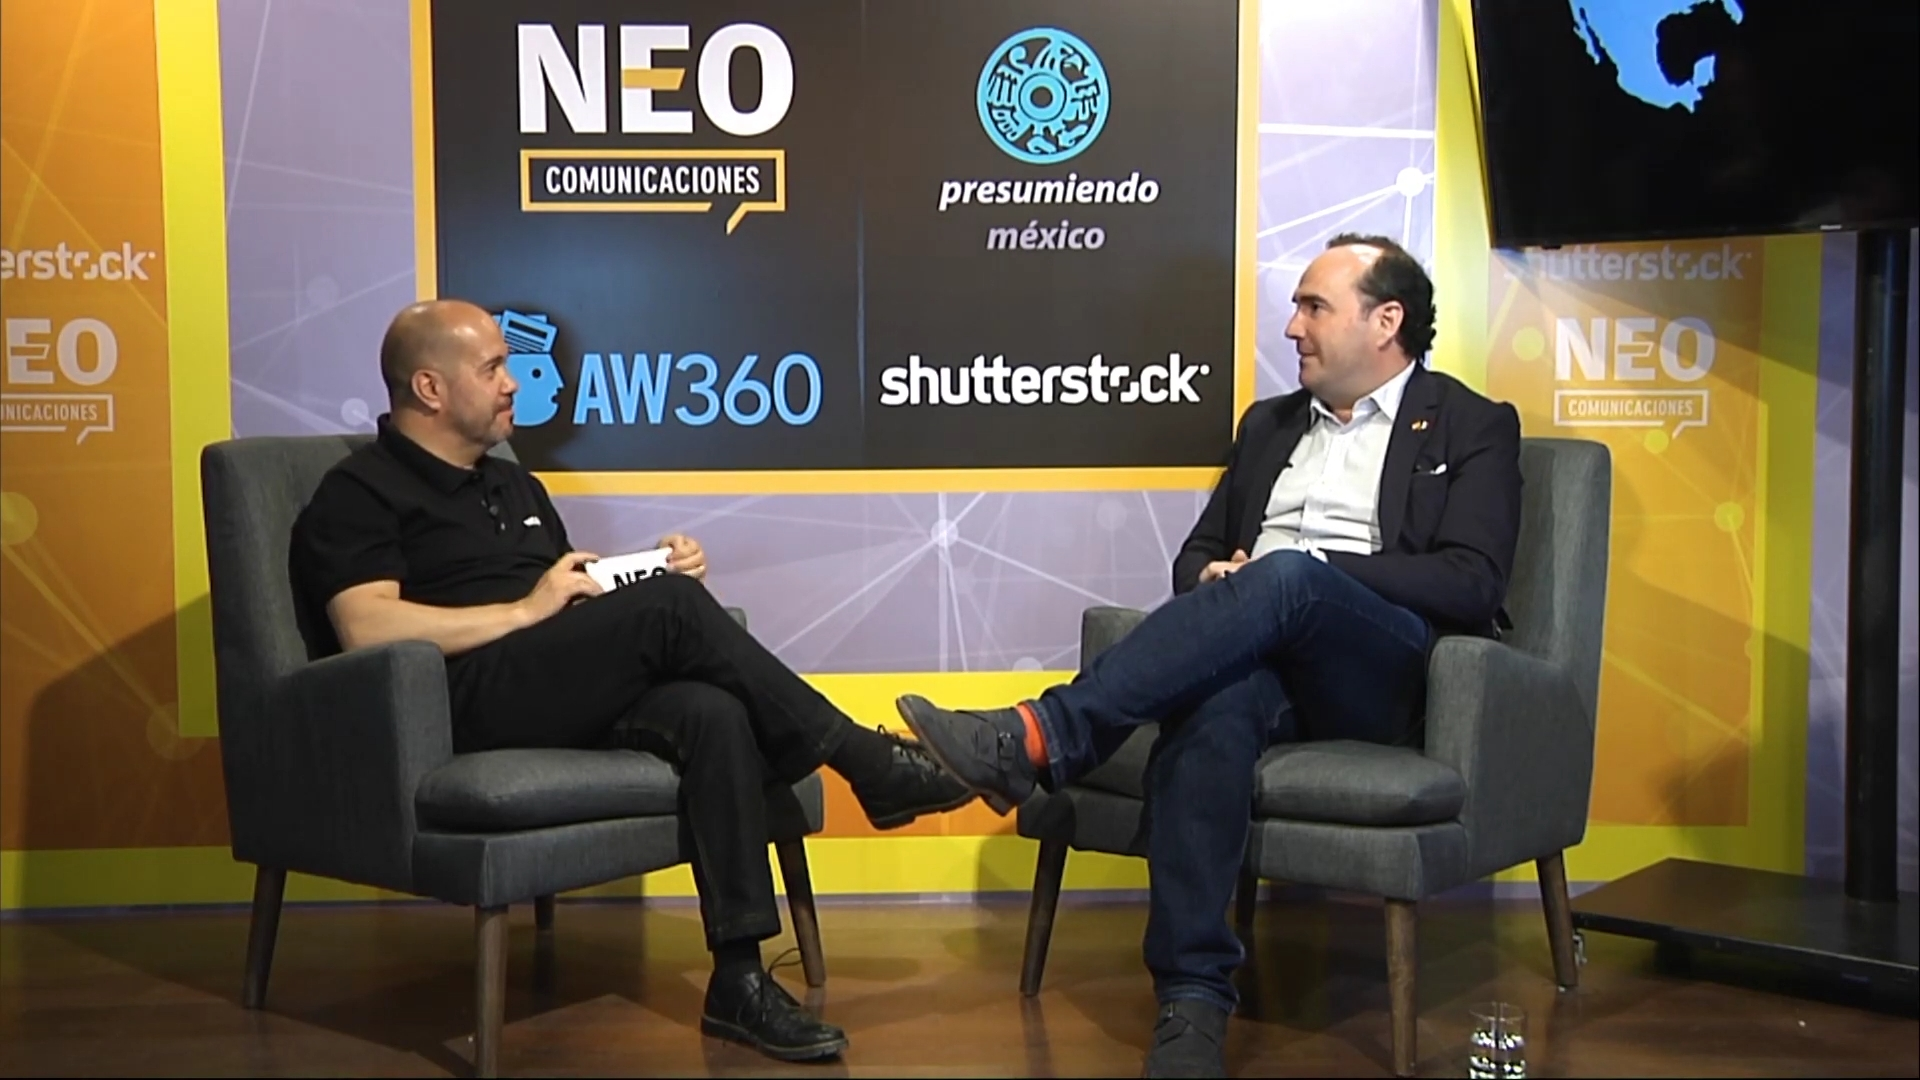 Andres Azpilicueta en entrevista con NEO Marketing Talk en Advertising Week 2020